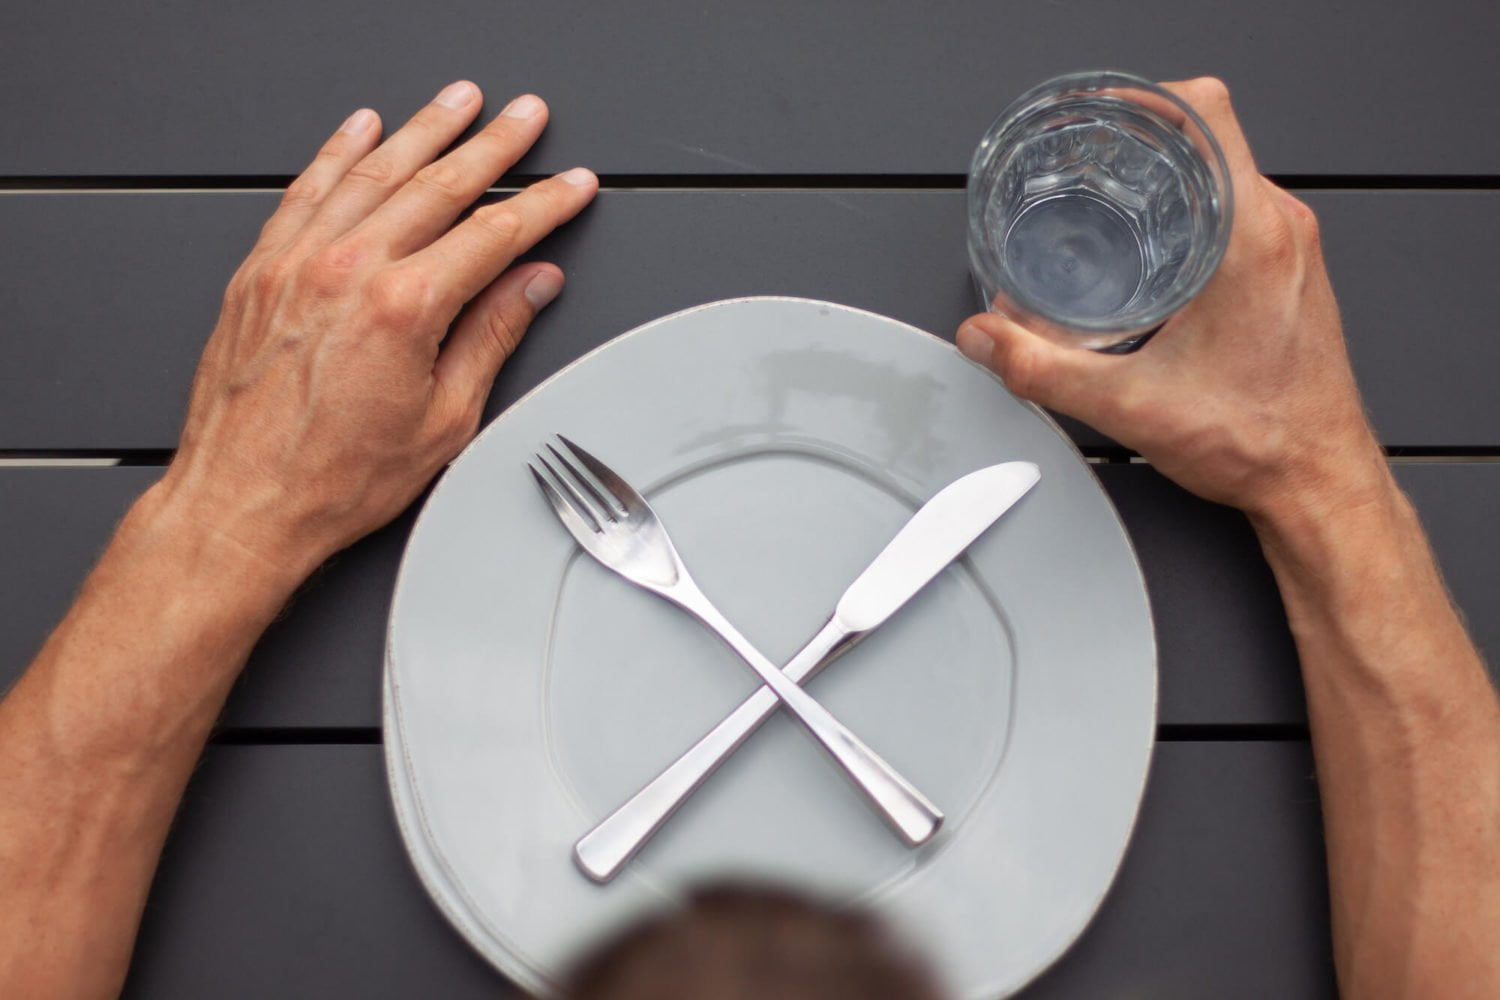 Water Fasting Tips Cover Image Of An Empty Plate And Glof Water